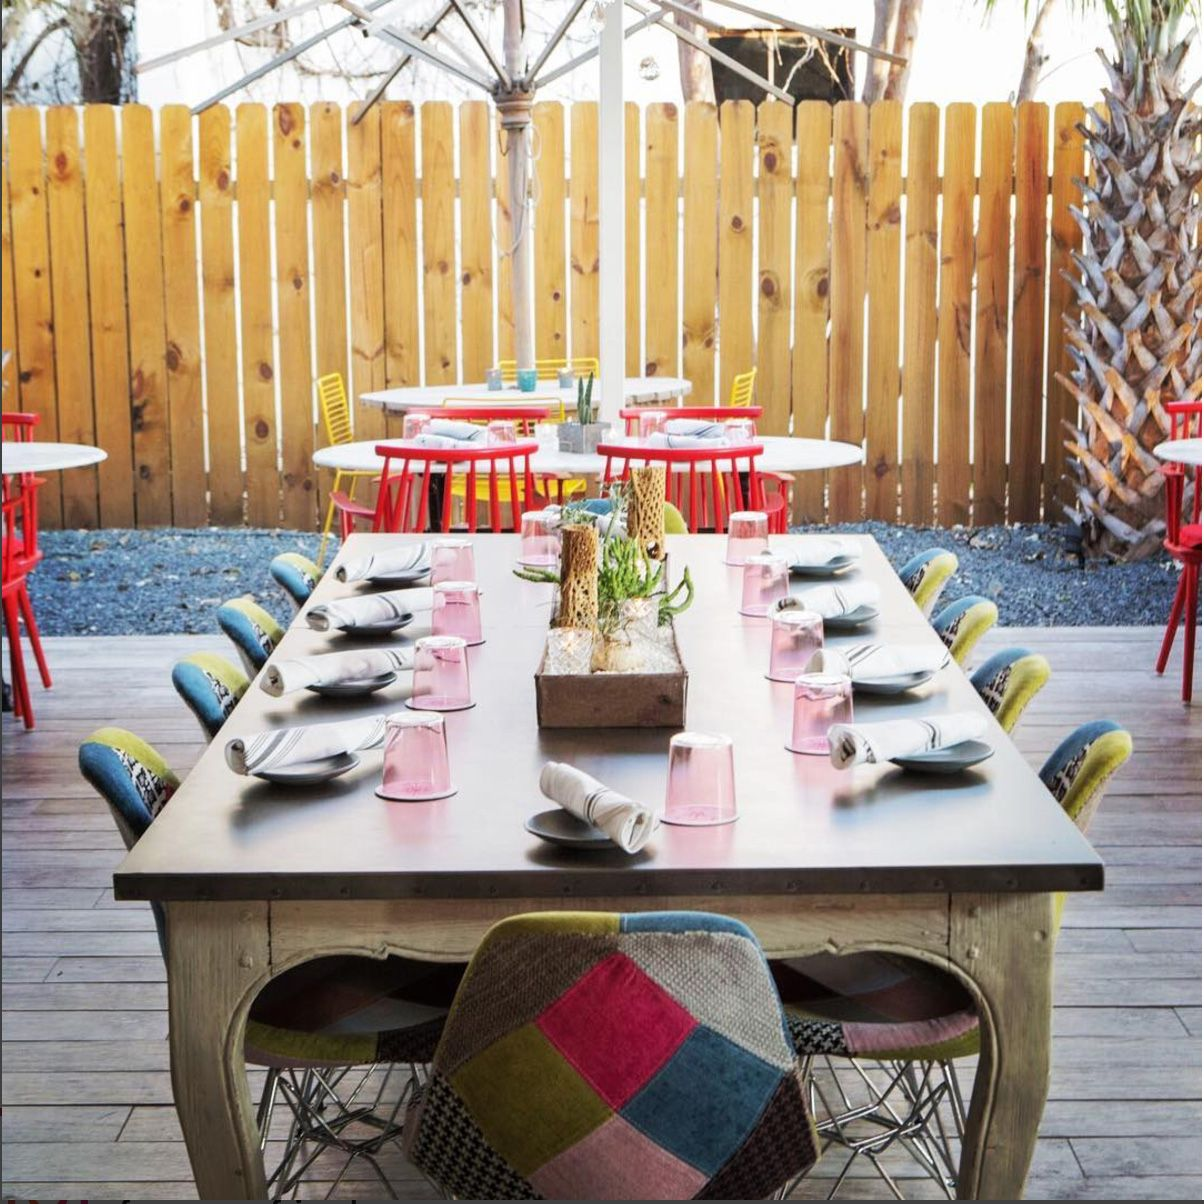 Sunday brunch buffet with patio vibe? Come enjoy Grizzelda